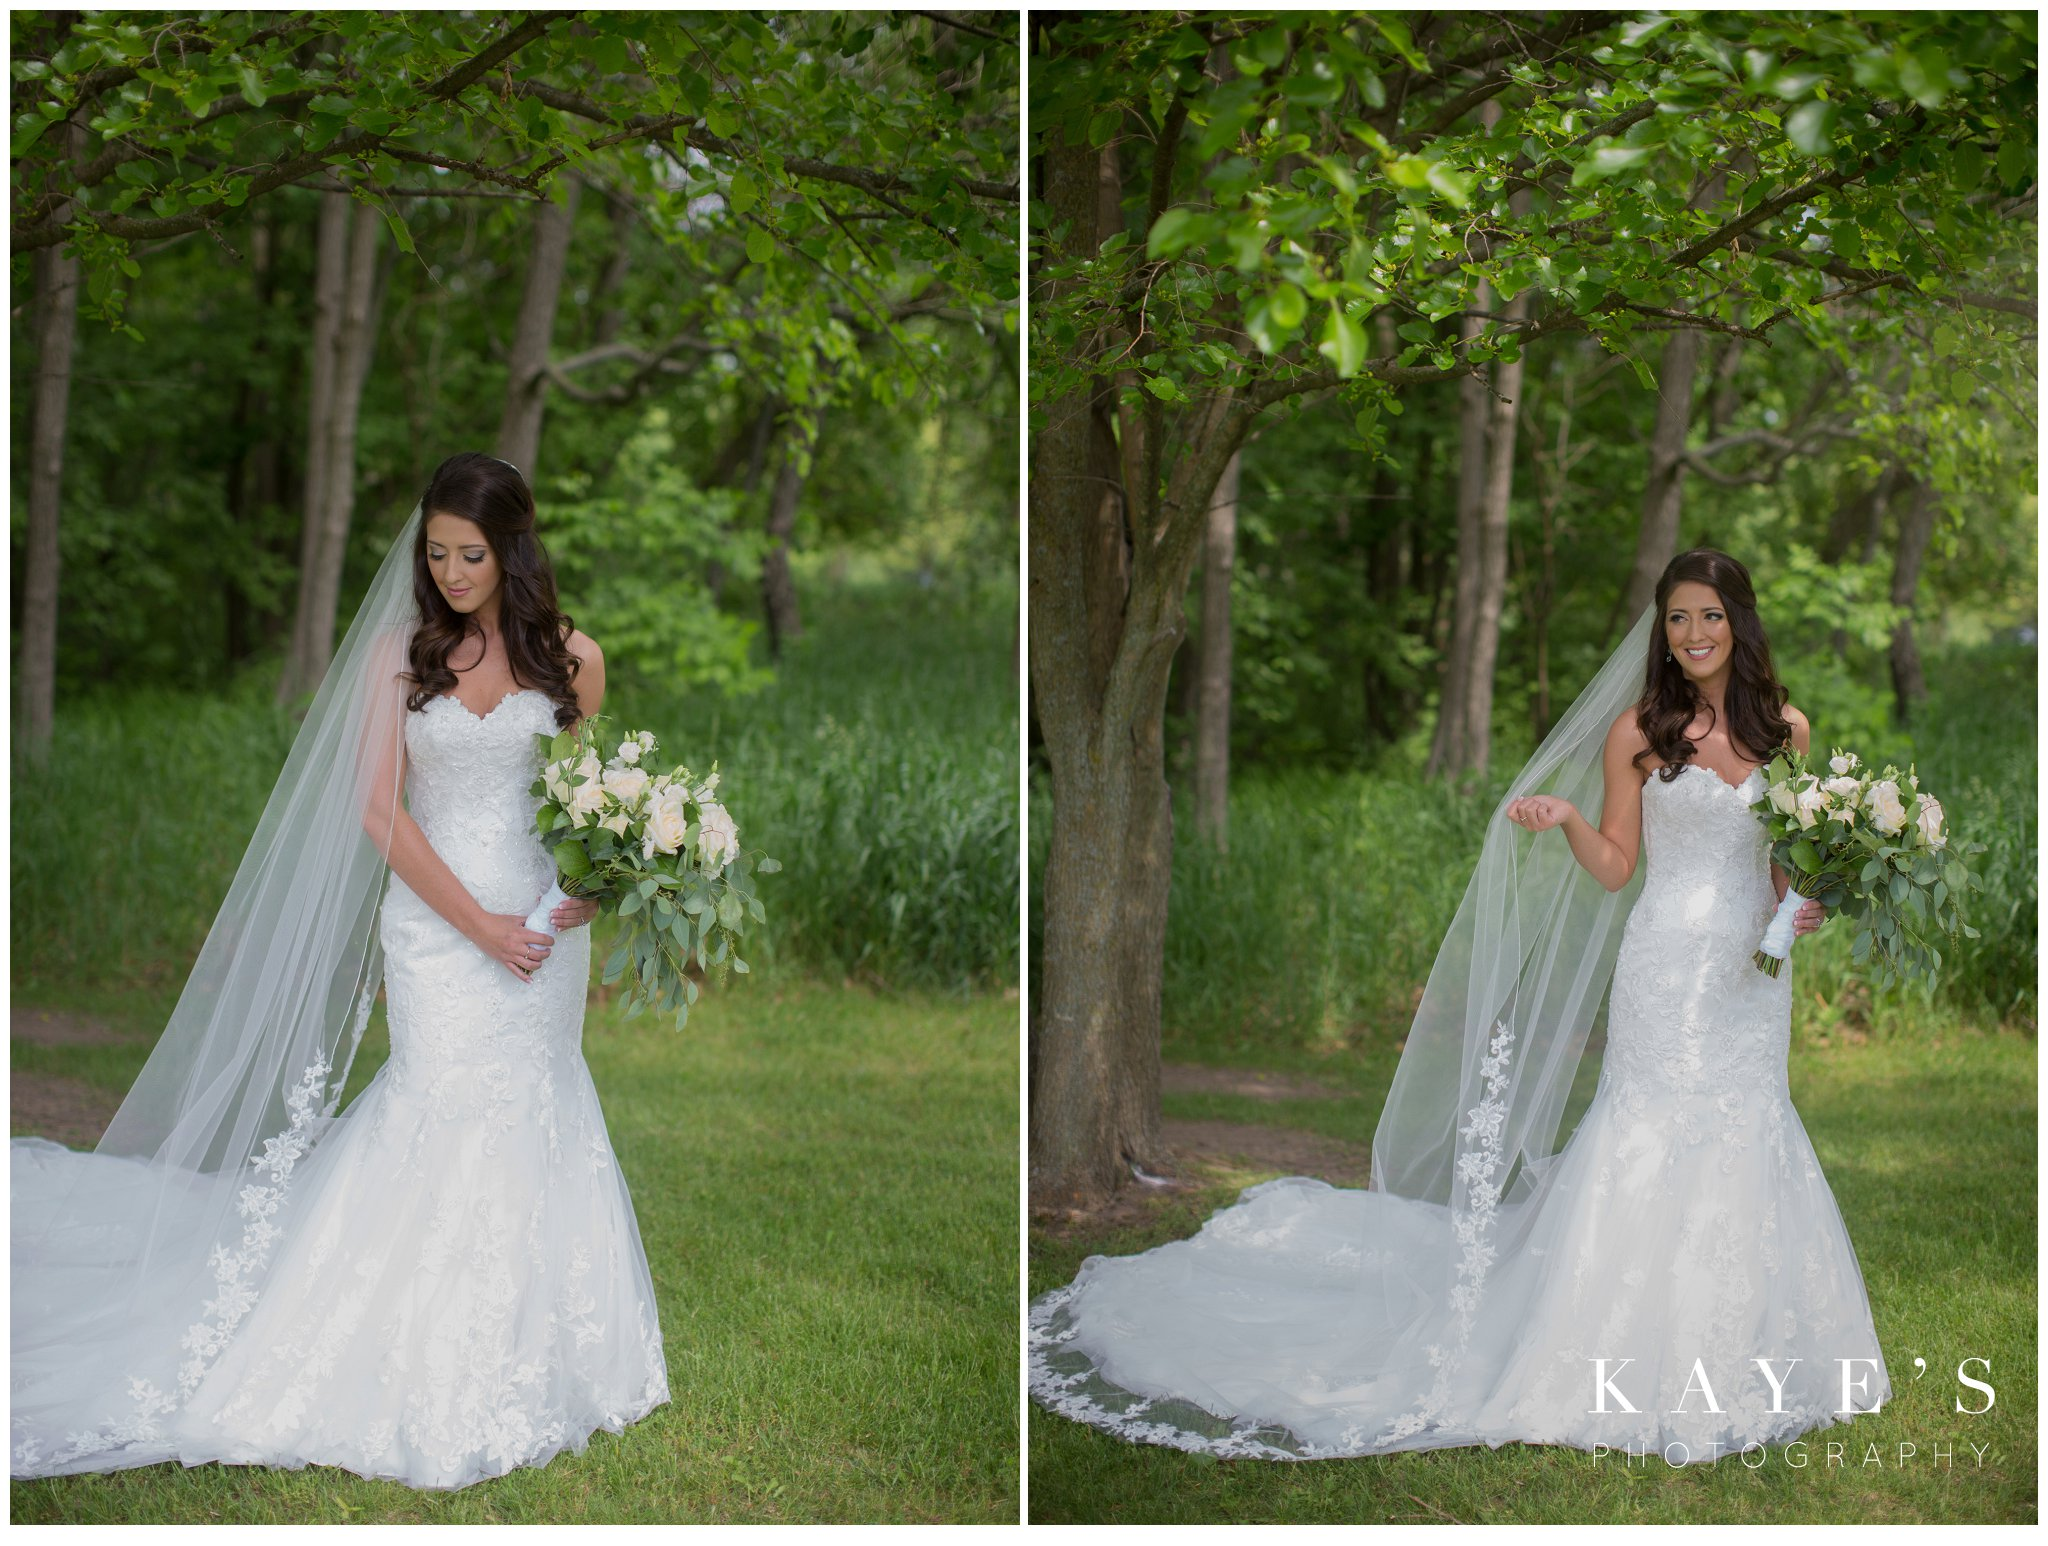 Kayes Photography- howell-michigan-wedding-photographer_0687.jpg